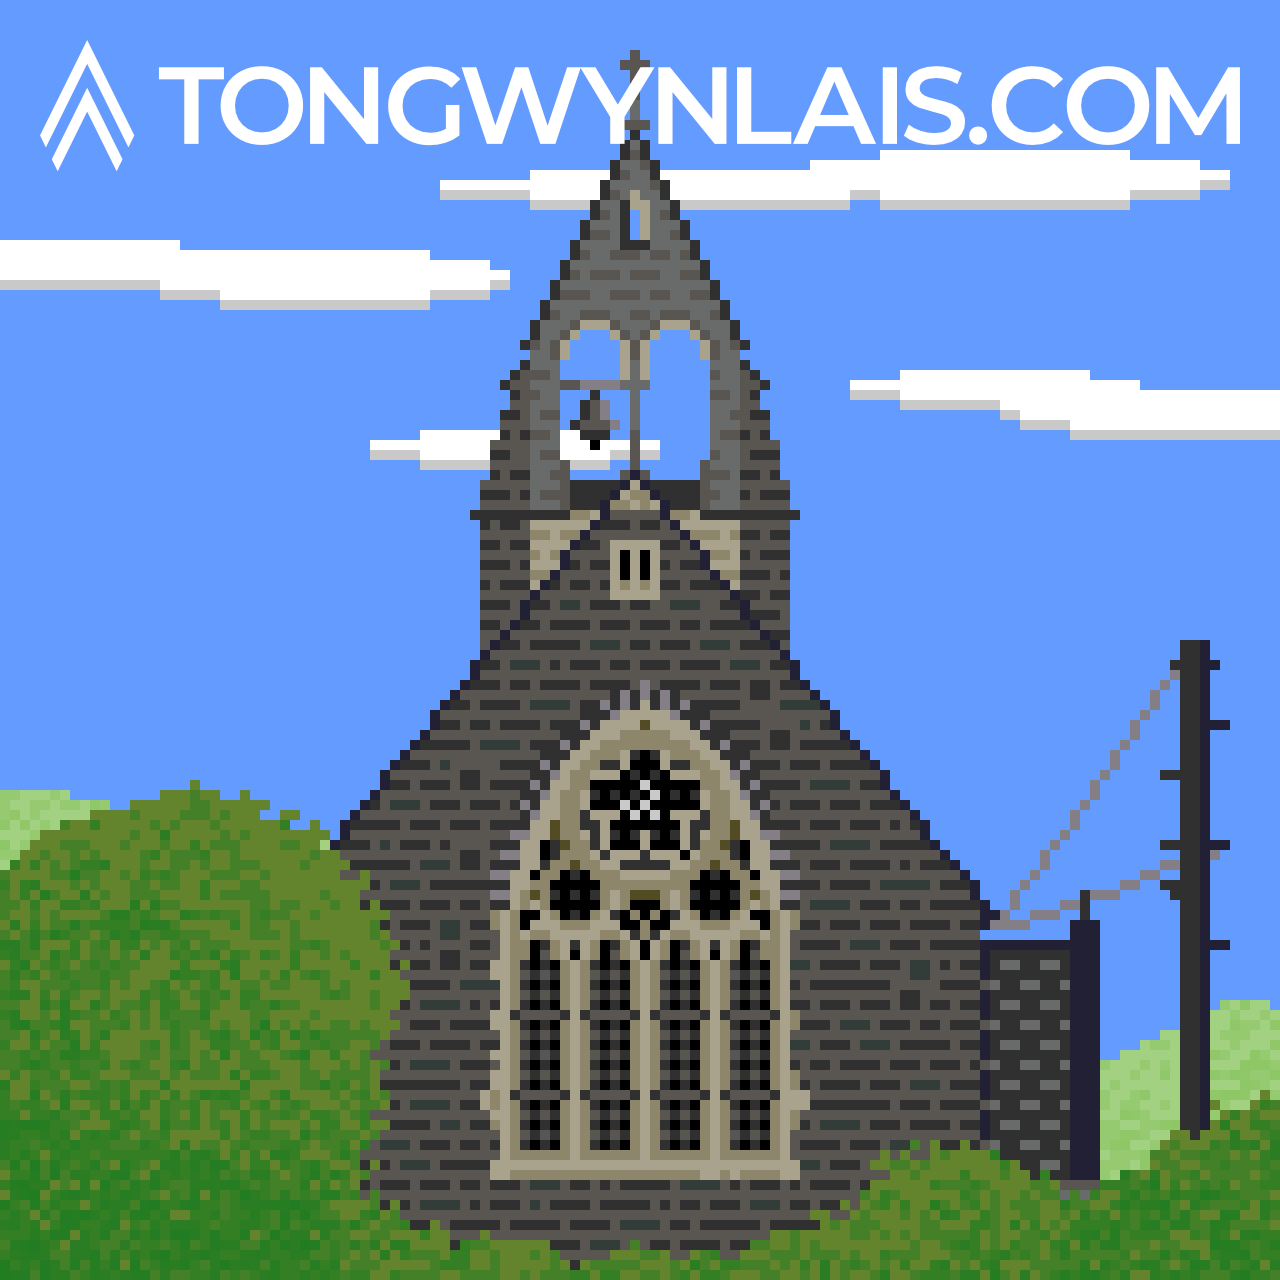 Pixel art illustration of St Michael's Church